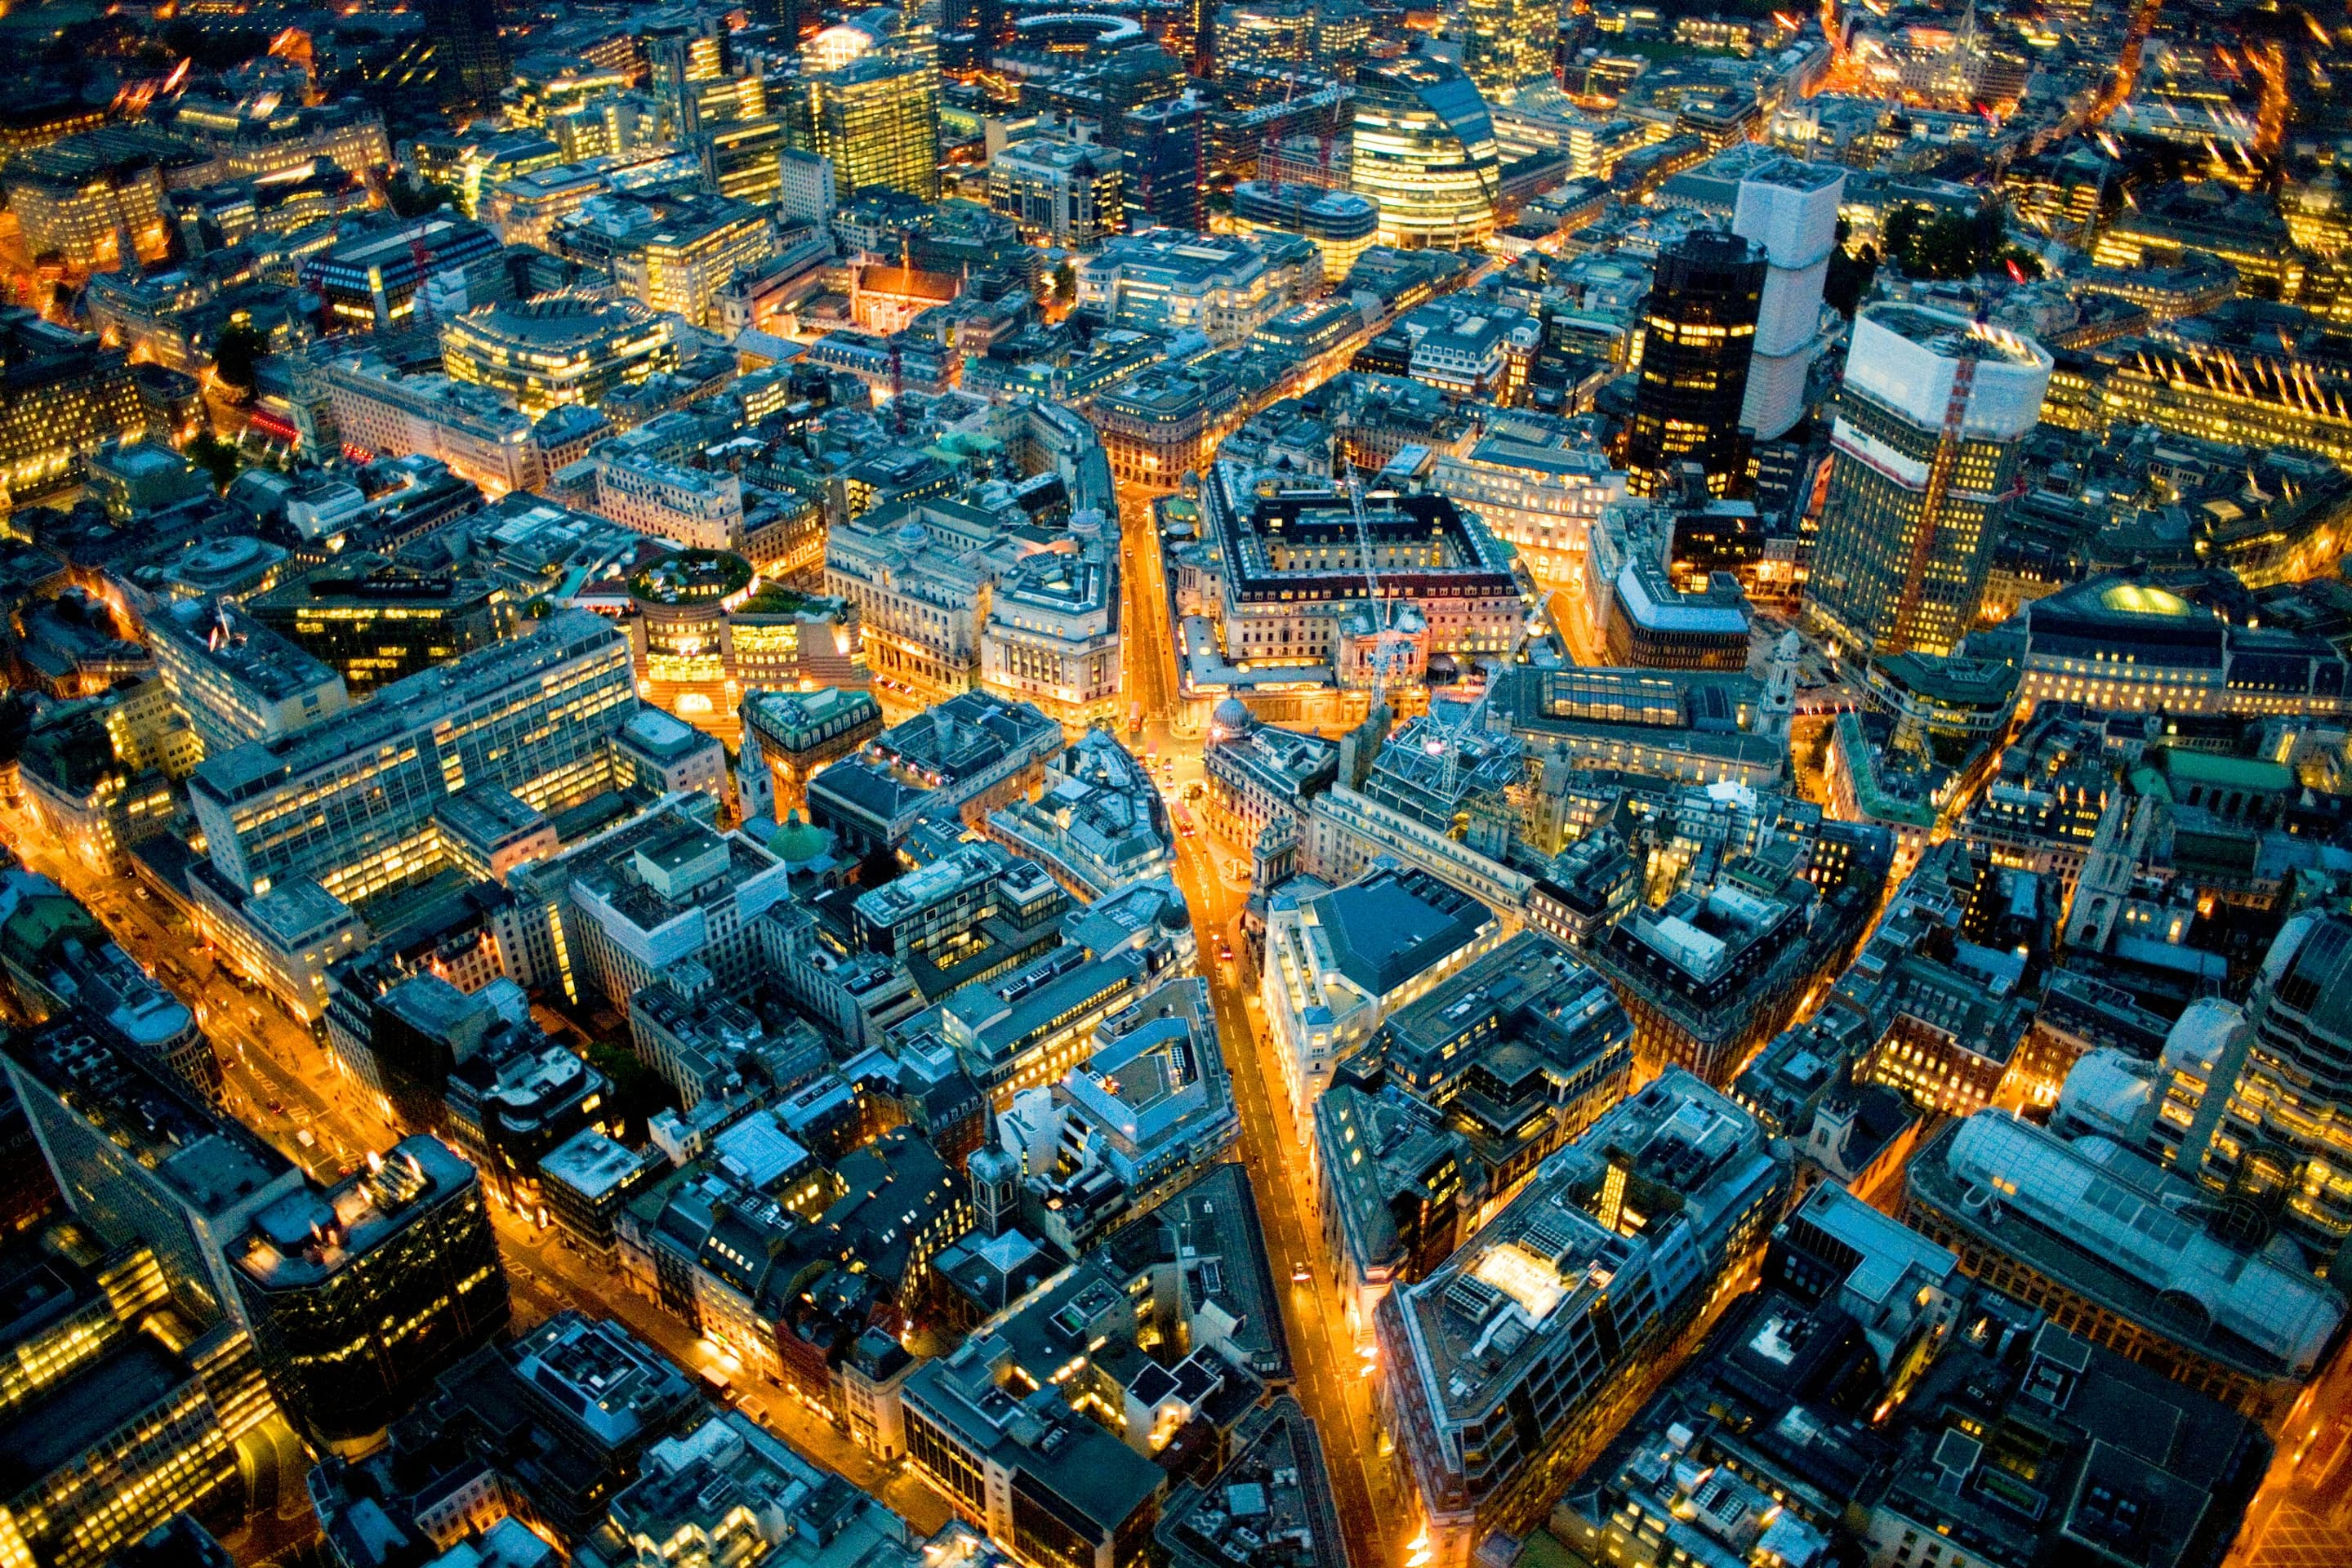 Bird's-eye view of central London at night